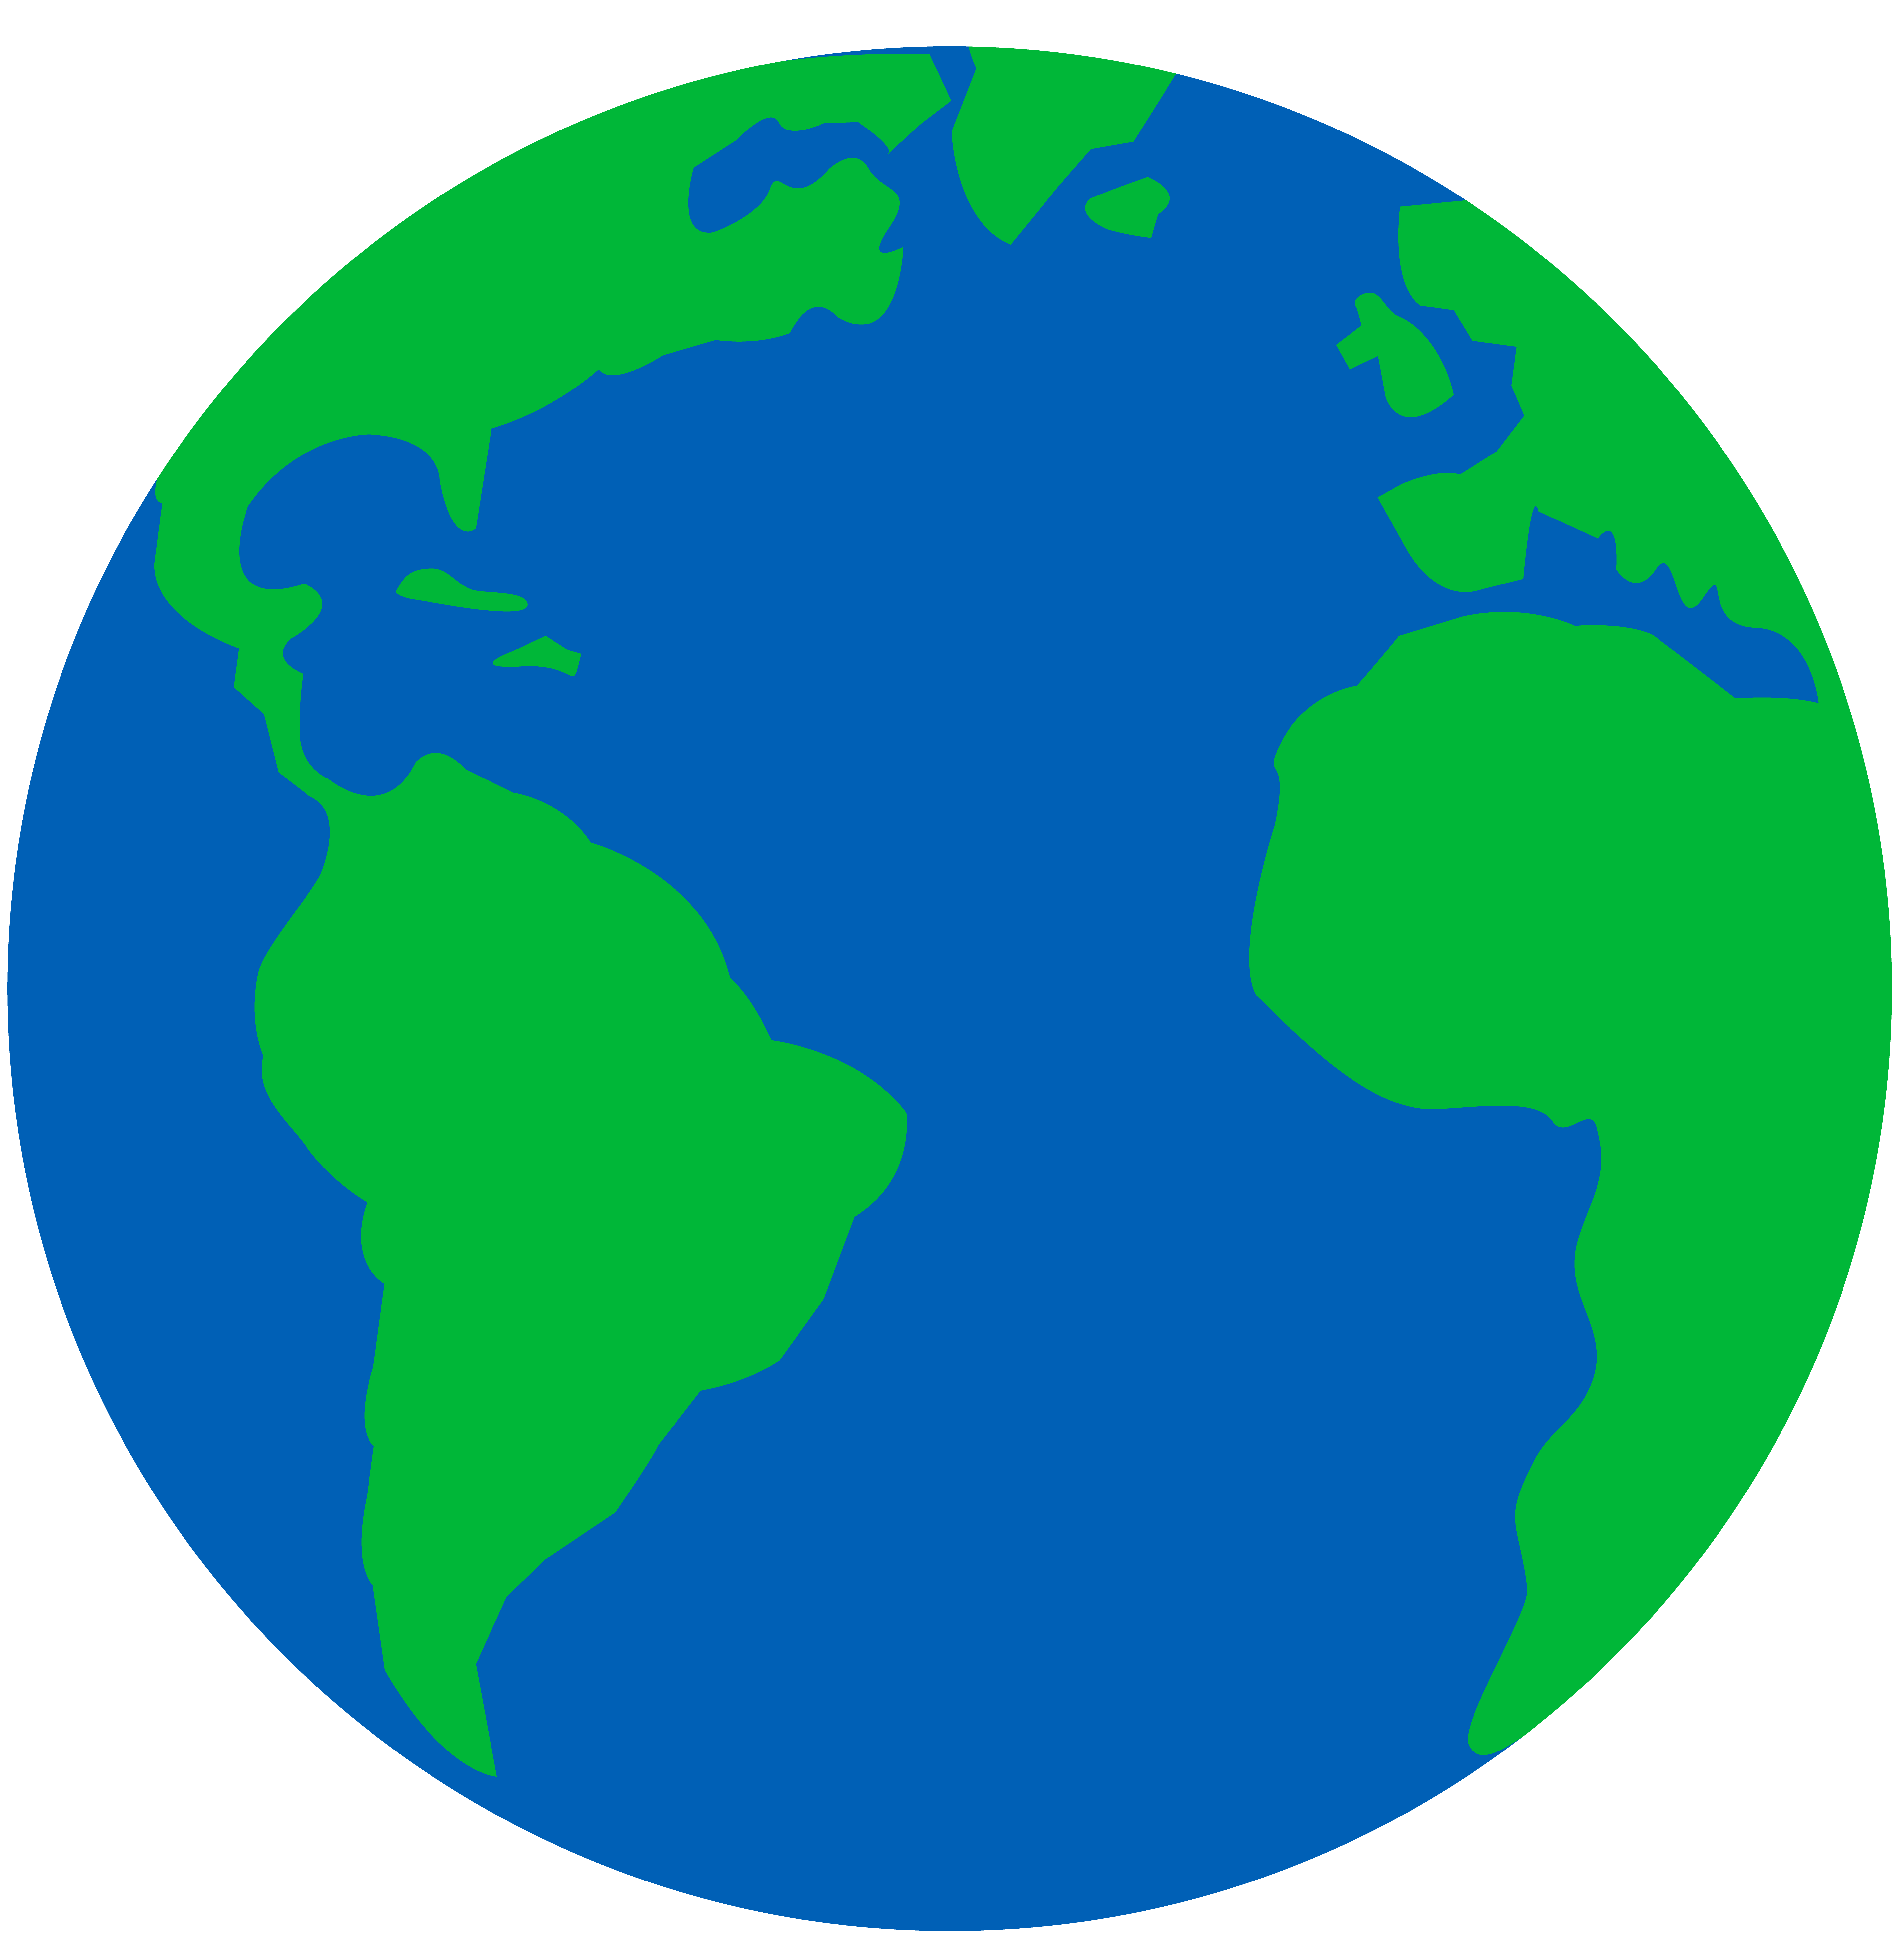 Simple Earth Drawing at GetDrawings.com | Free for personal use ...